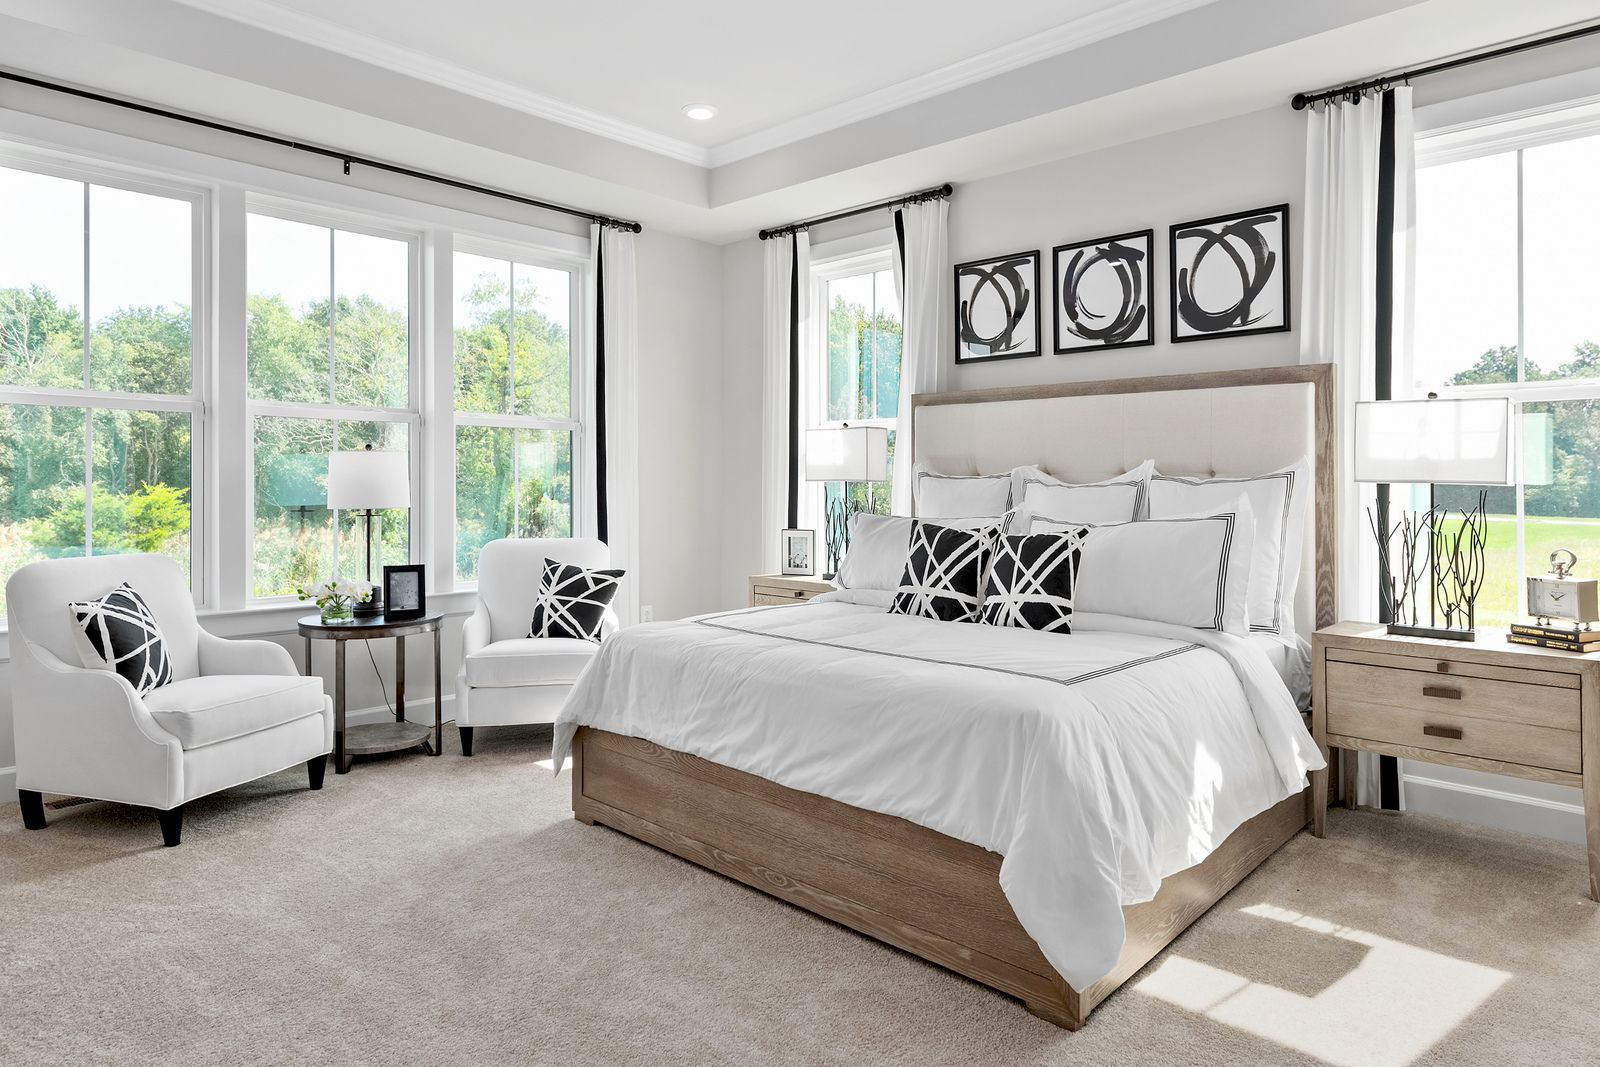 Bedroom featured in the Brookhaven By NVHomes in Sussex, DE